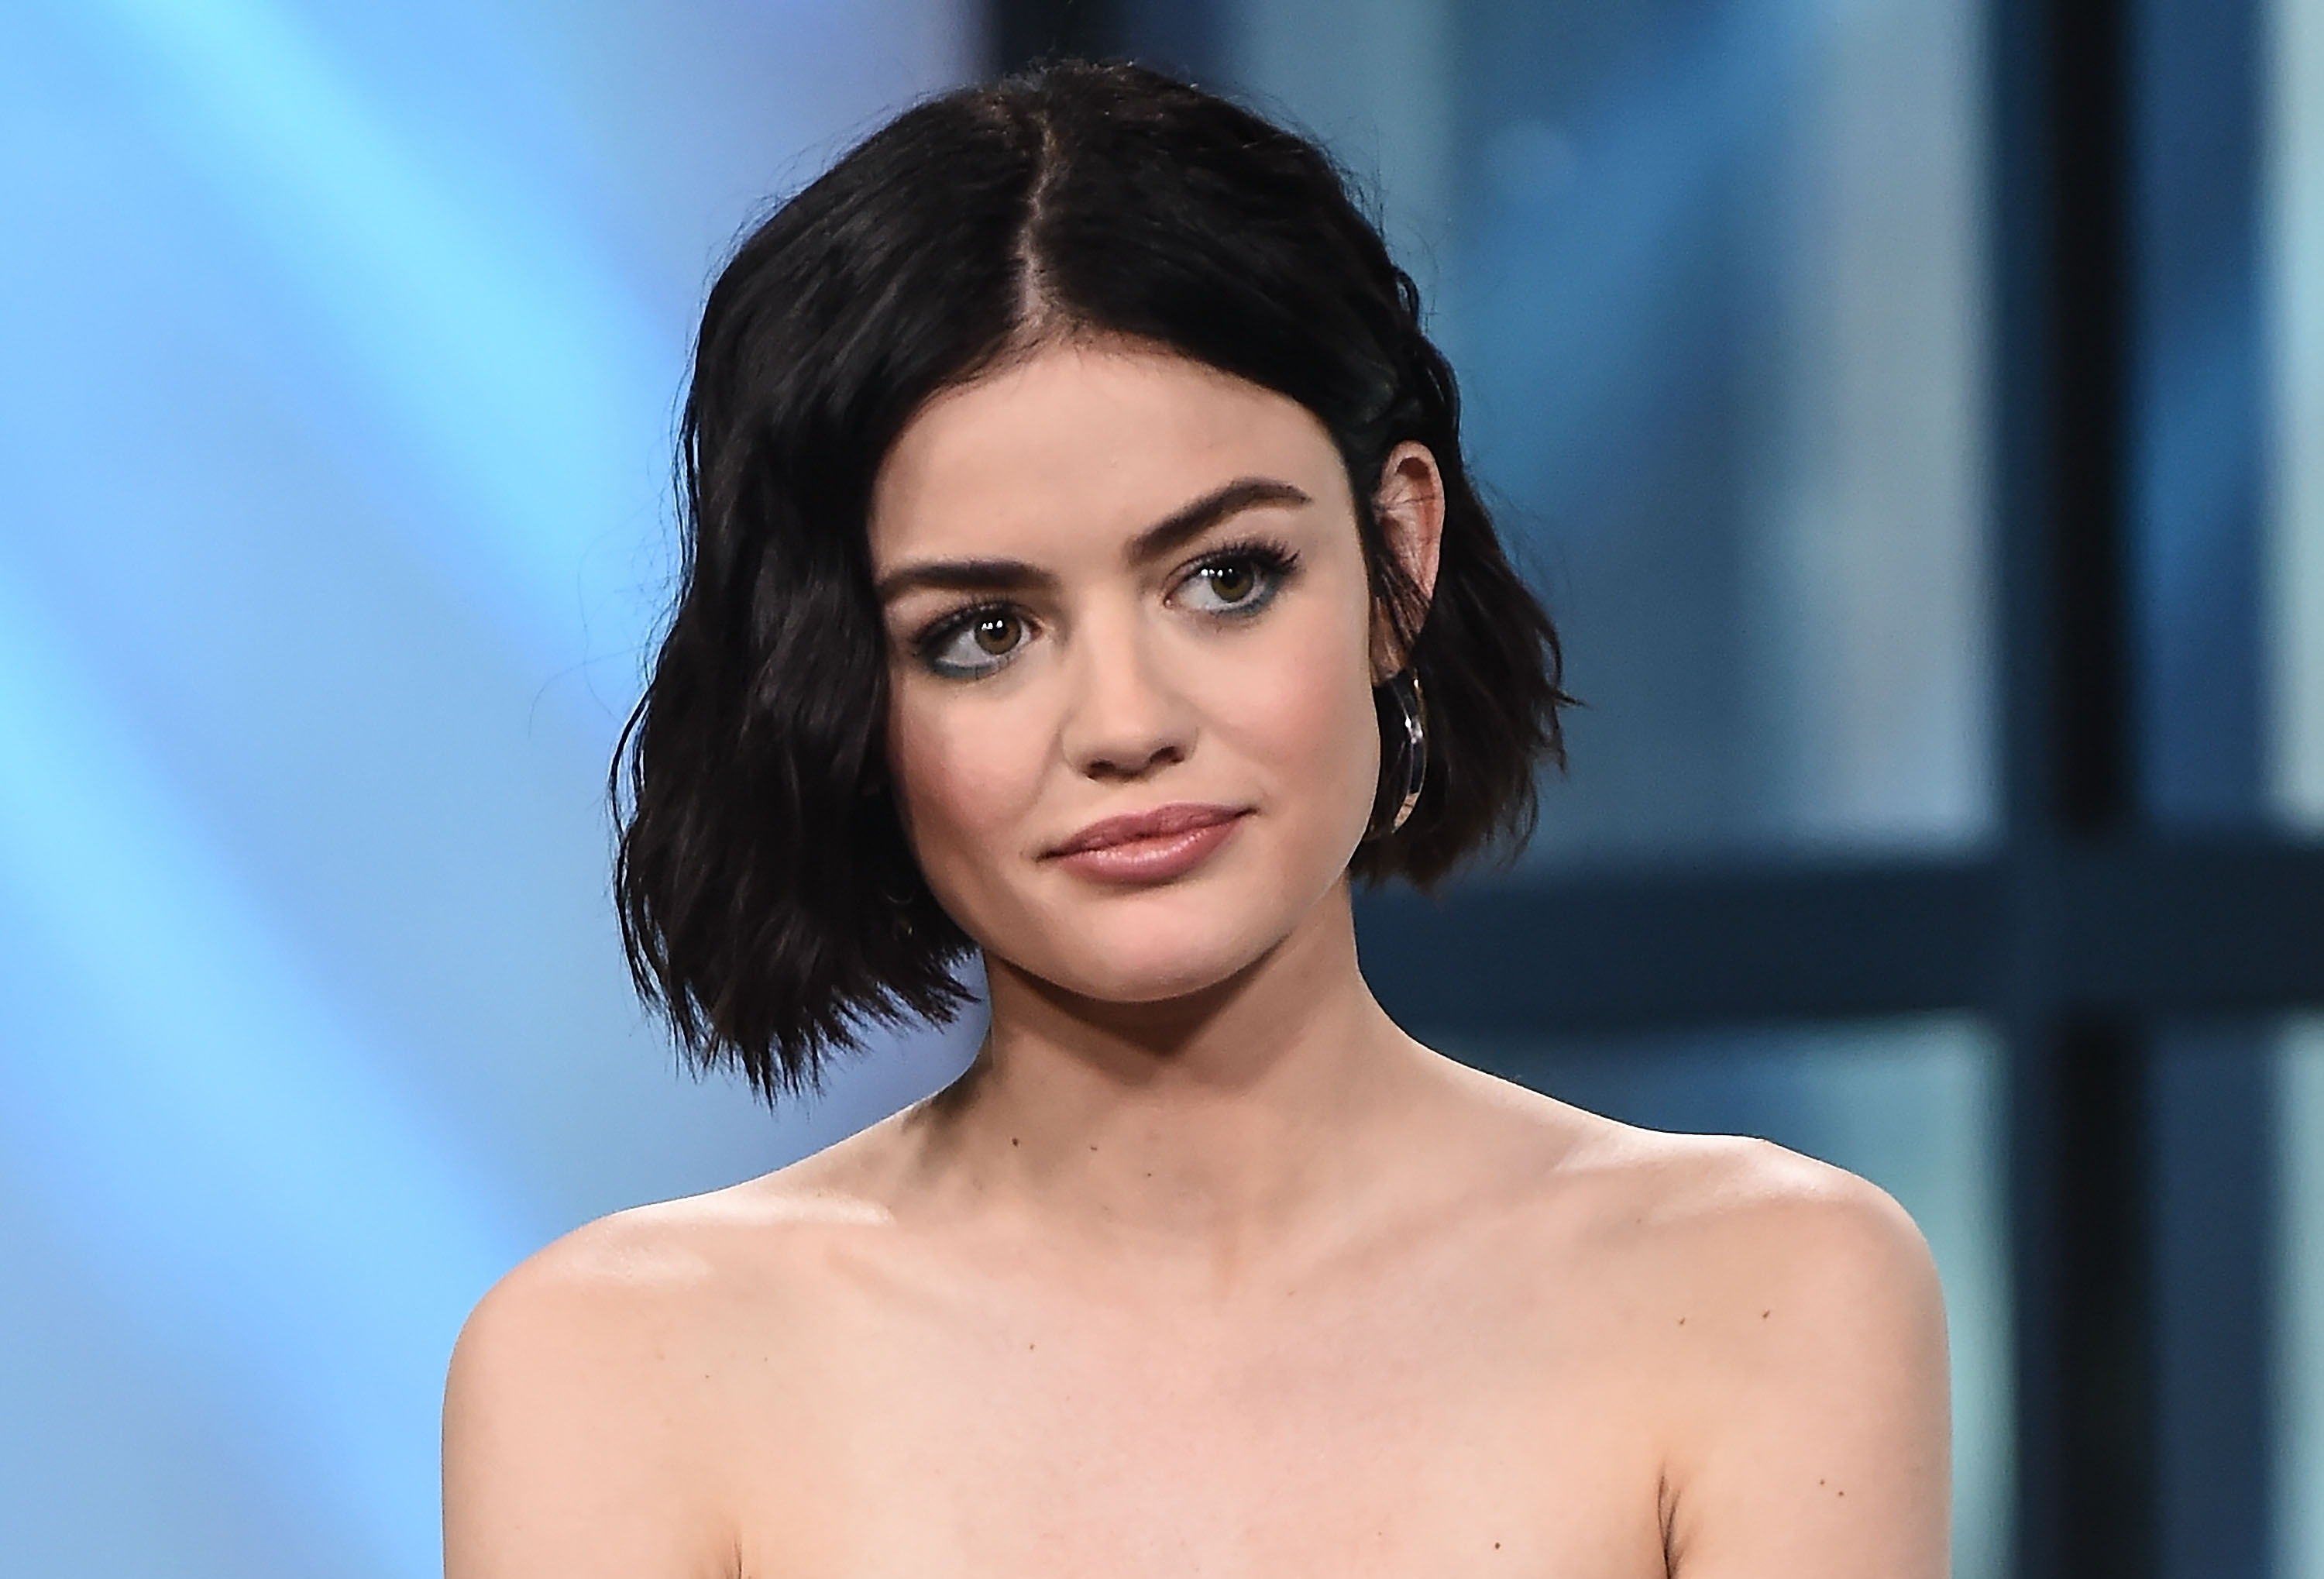 Lucy Hale Just Revealed She Had A Huge Crush On One Of Her Costars At The Start Of Pretty Little Liars Hellogiggles